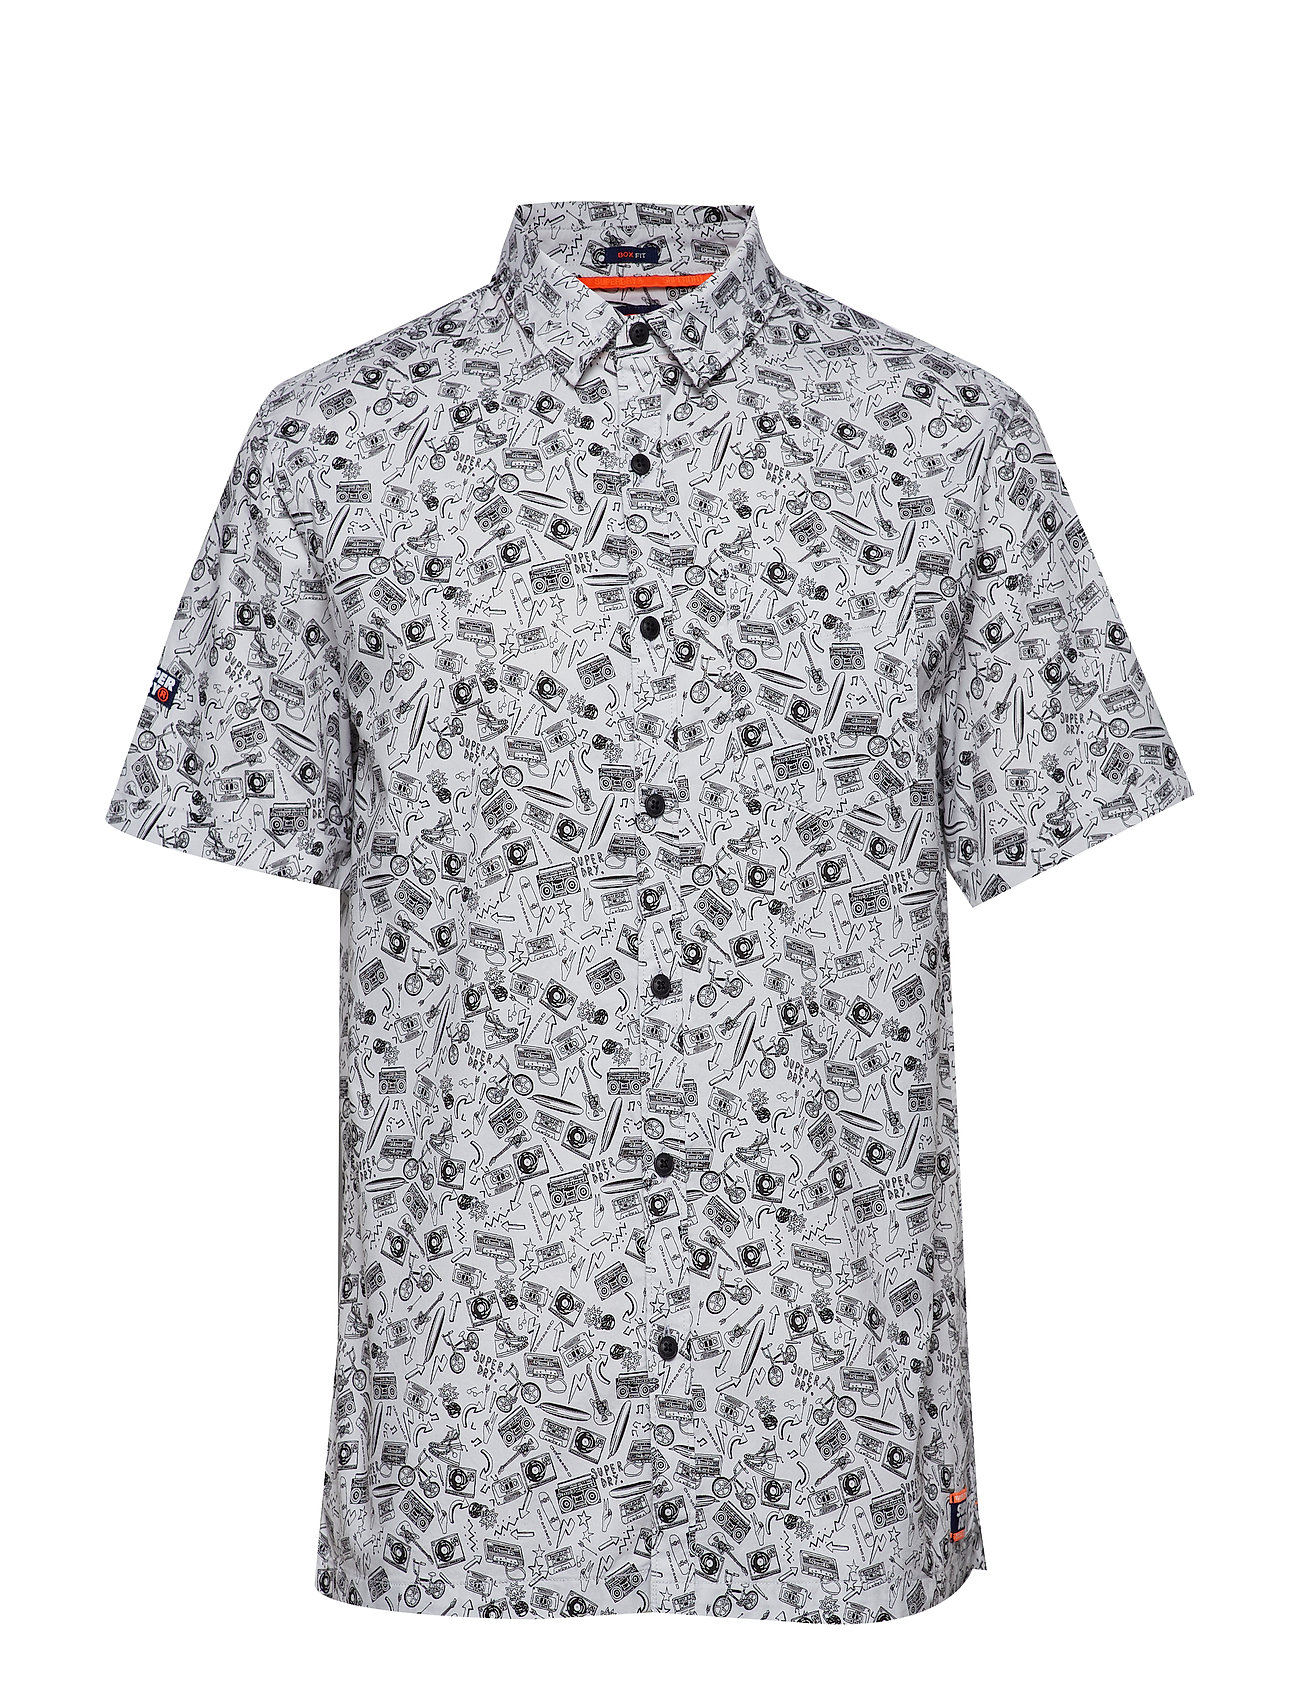 Superdry SEATTLE SKATE S/S SHIRT